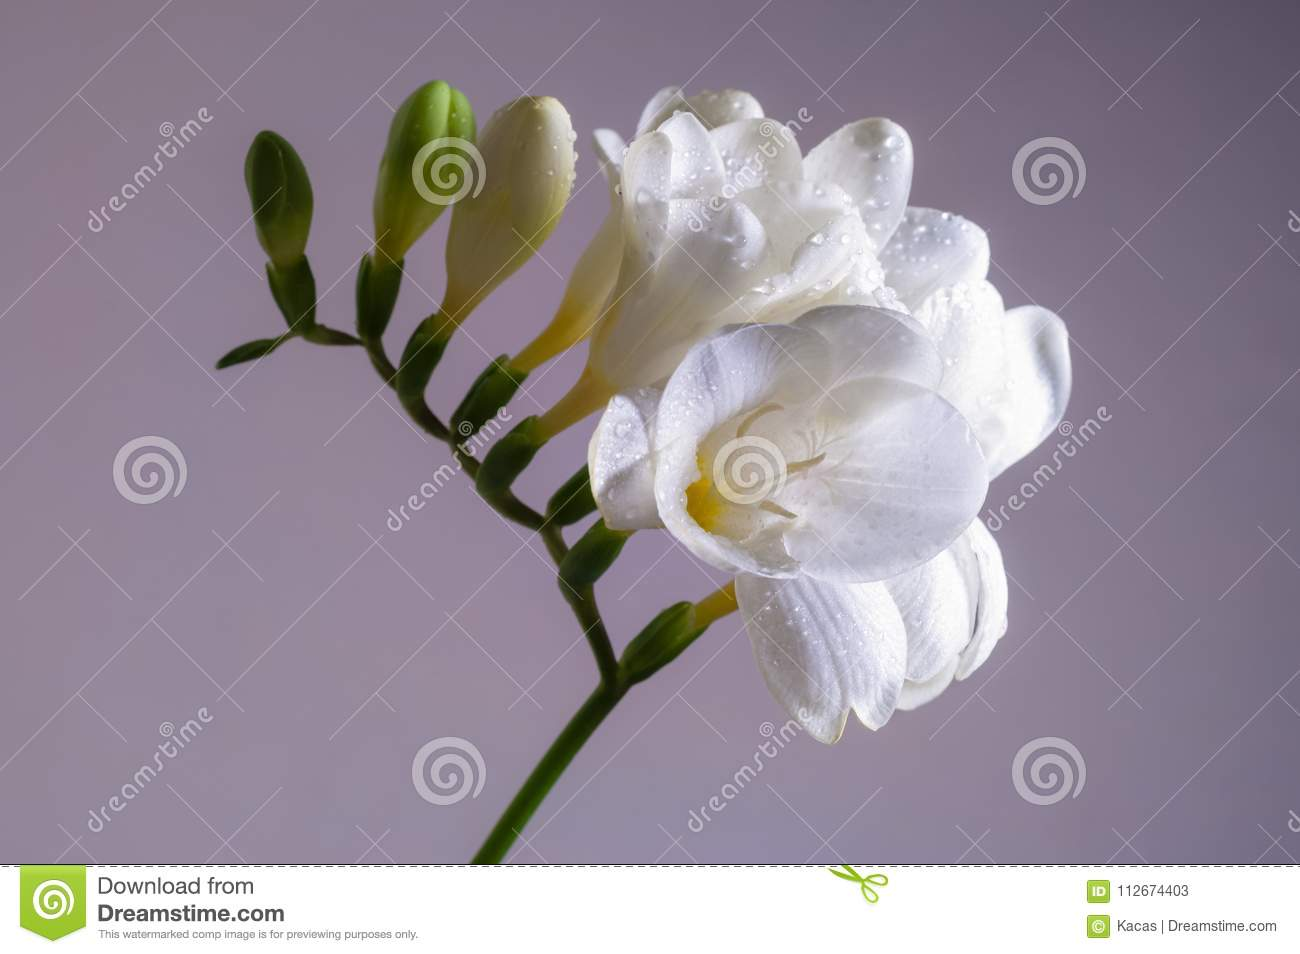 Blooming freesia flower stock image image of colors 112674403 download blooming freesia flower stock image image of colors 112674403 mightylinksfo